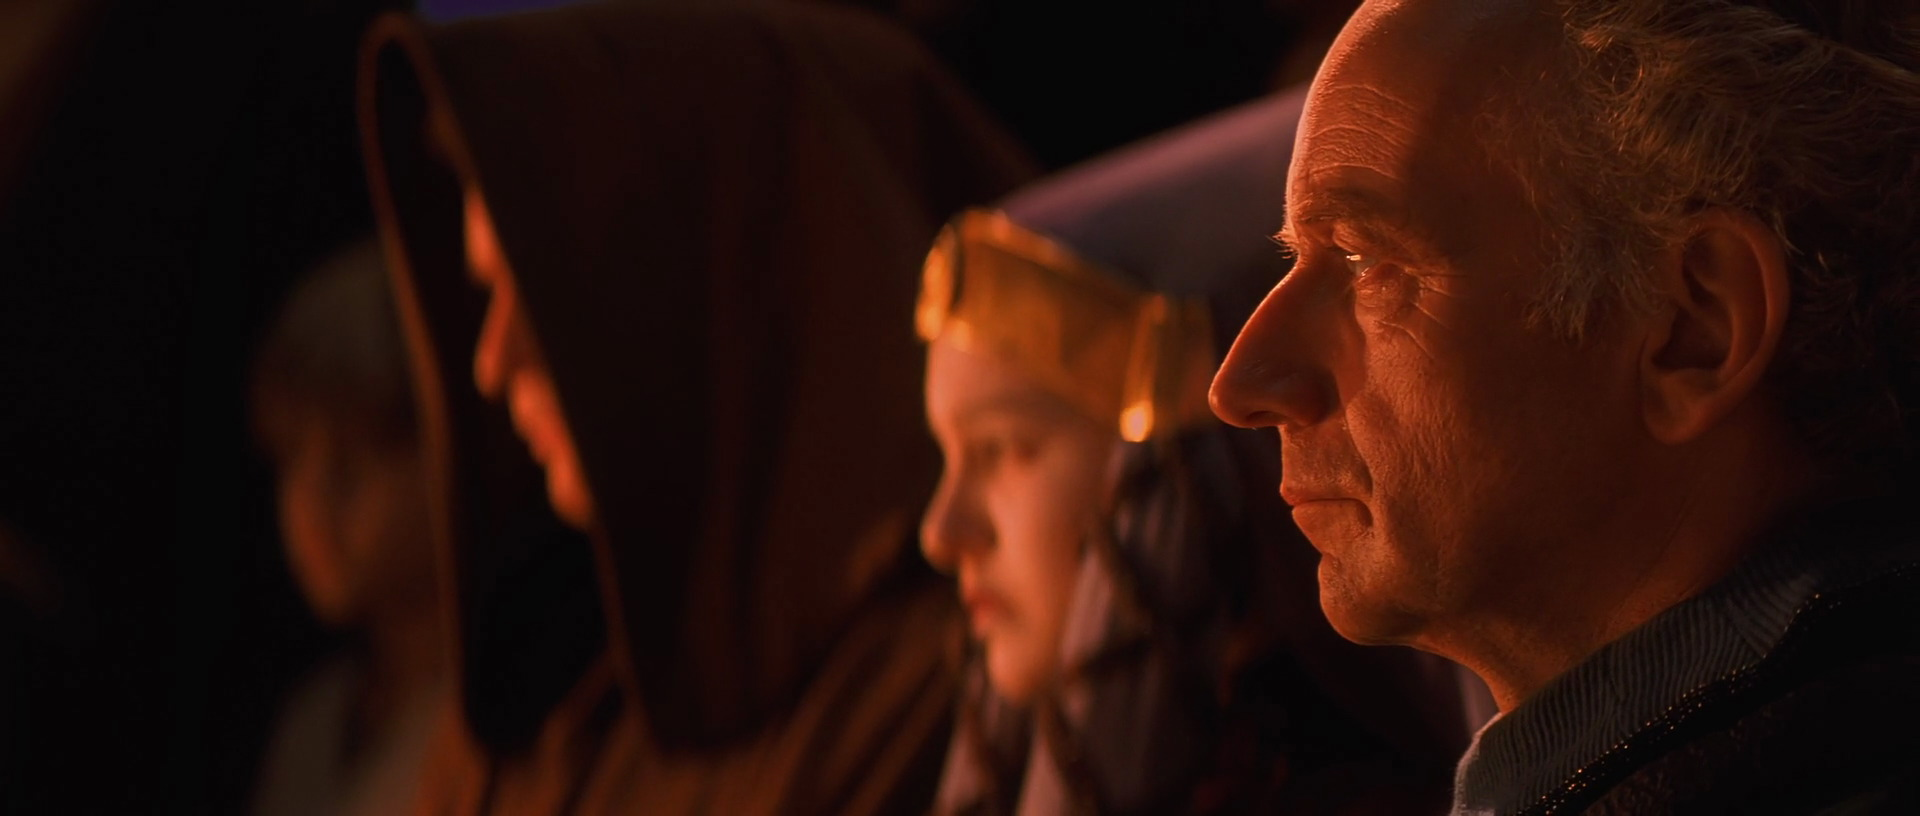 Ian McDiarmid Senator Palpatine Star Wars Episode I The Phantom Menace.